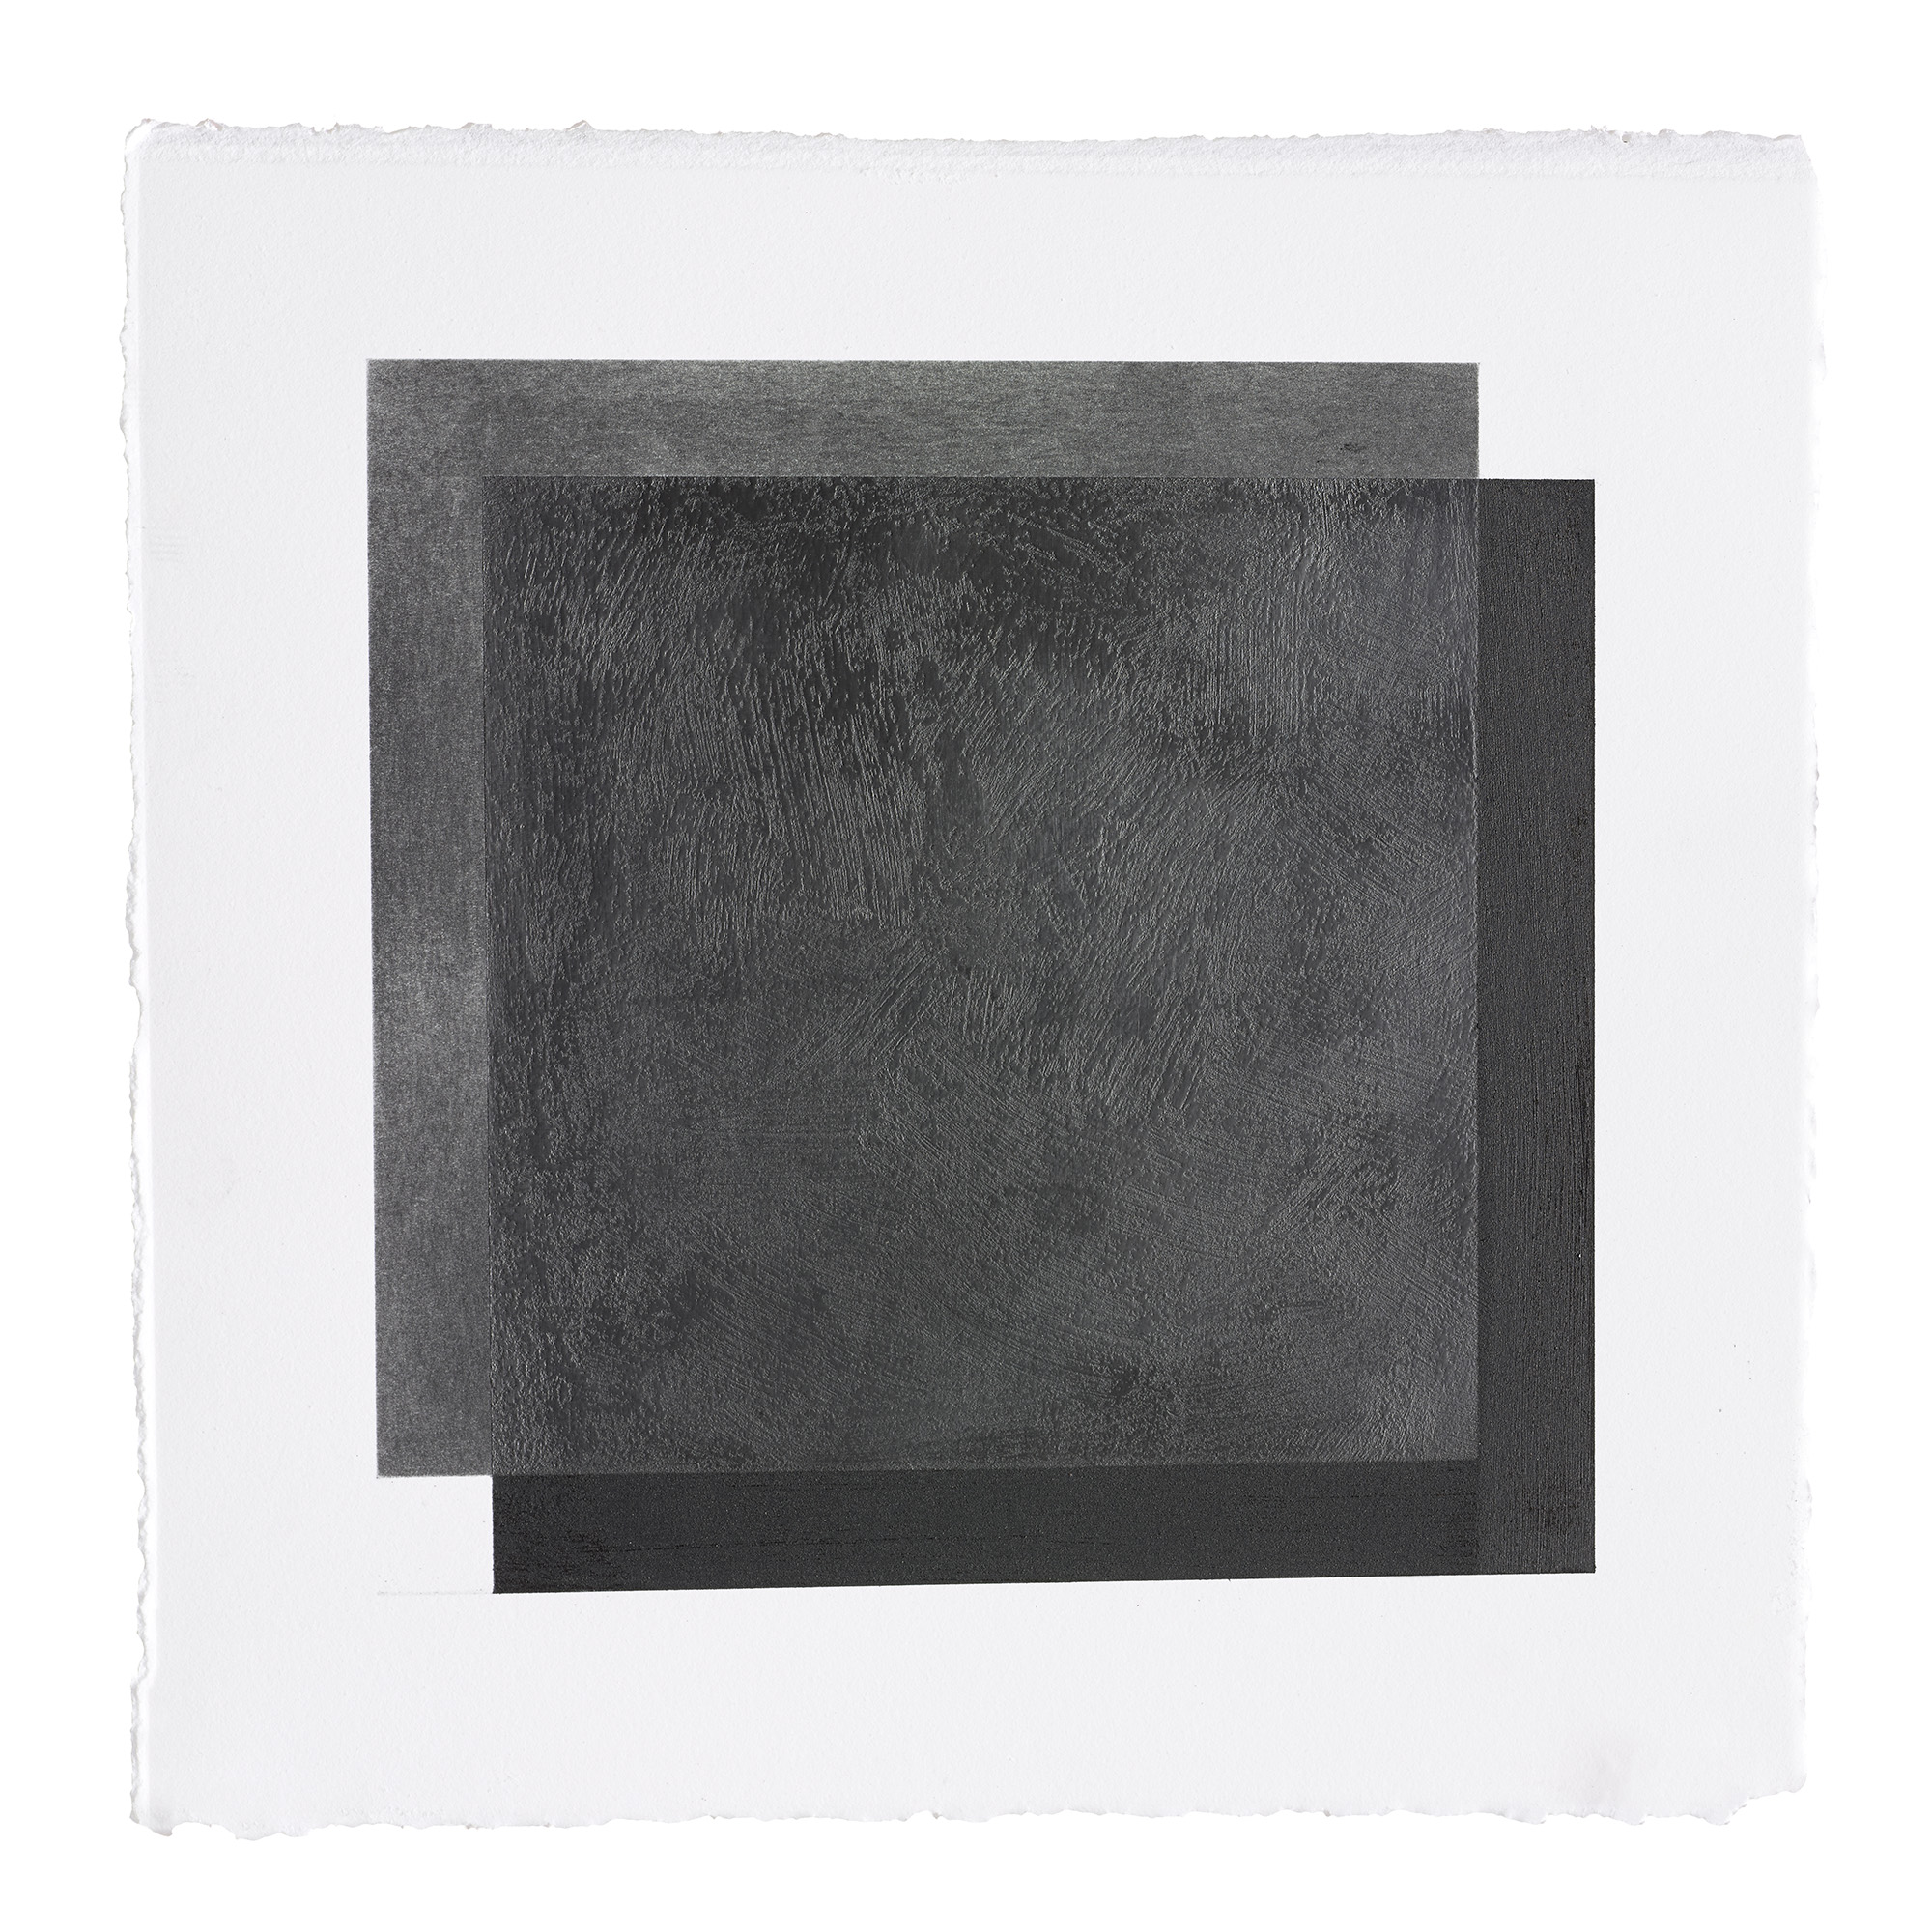 """ML34 peach pit soot and graphite on paper, 10.5"""" by 10.5"""", 2015"""